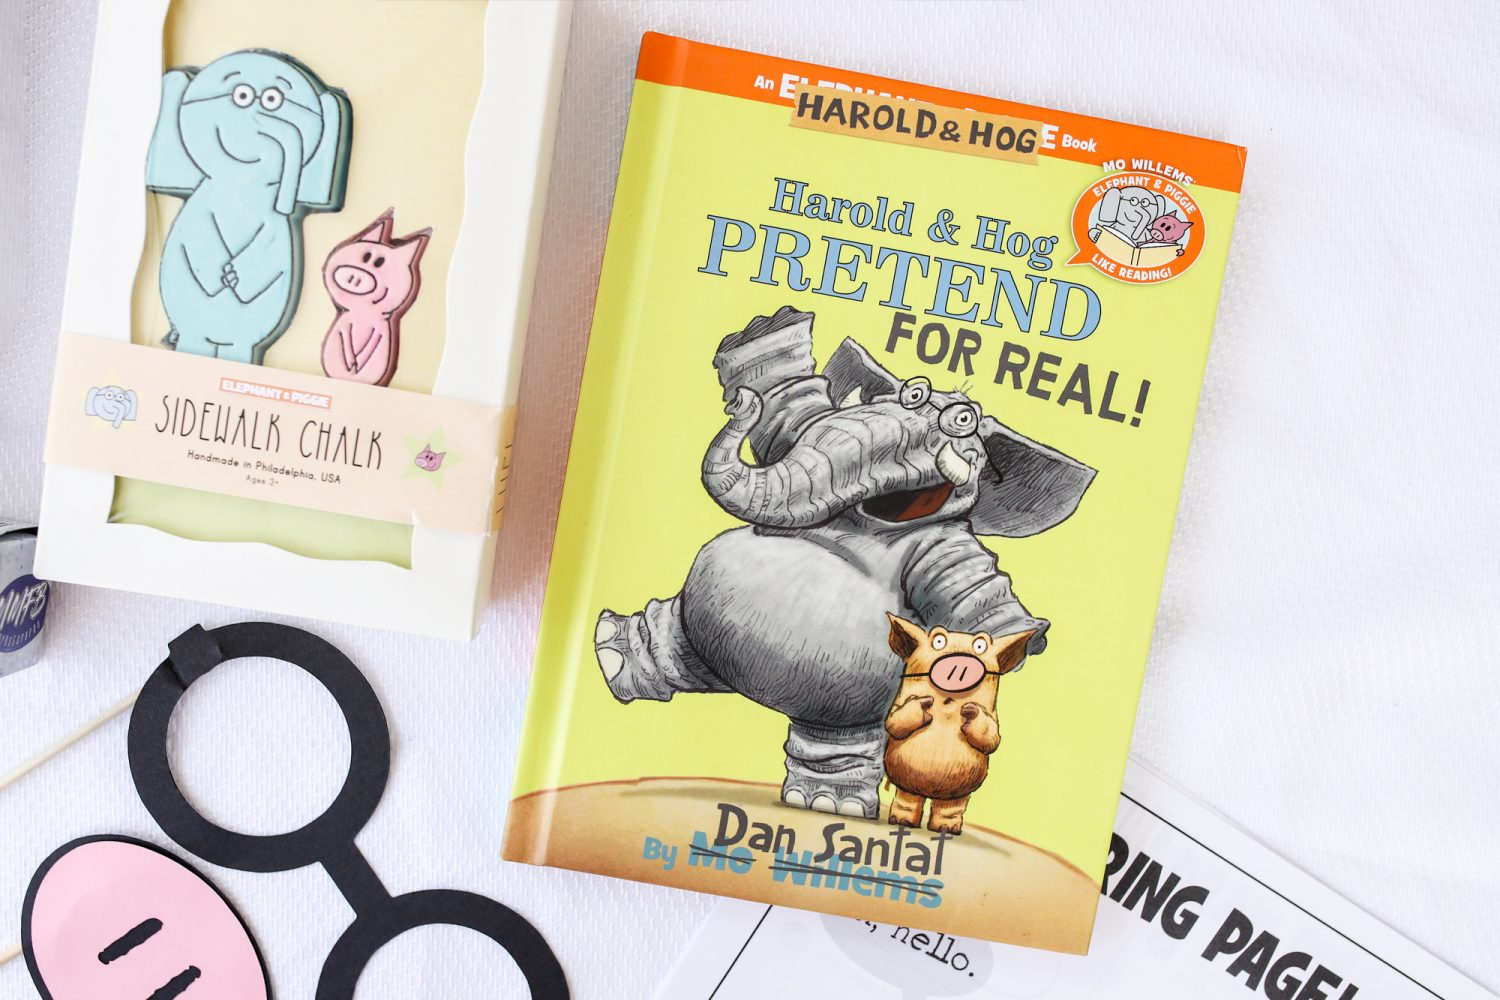 elephant and piggie, elephant & piggie like reading, harold and hog, pretend for real, mo willems, pigeon, mo willems book, disney books, disney, kids books, childrens books, best new children's book, willems, best children's author, best kids author, book release